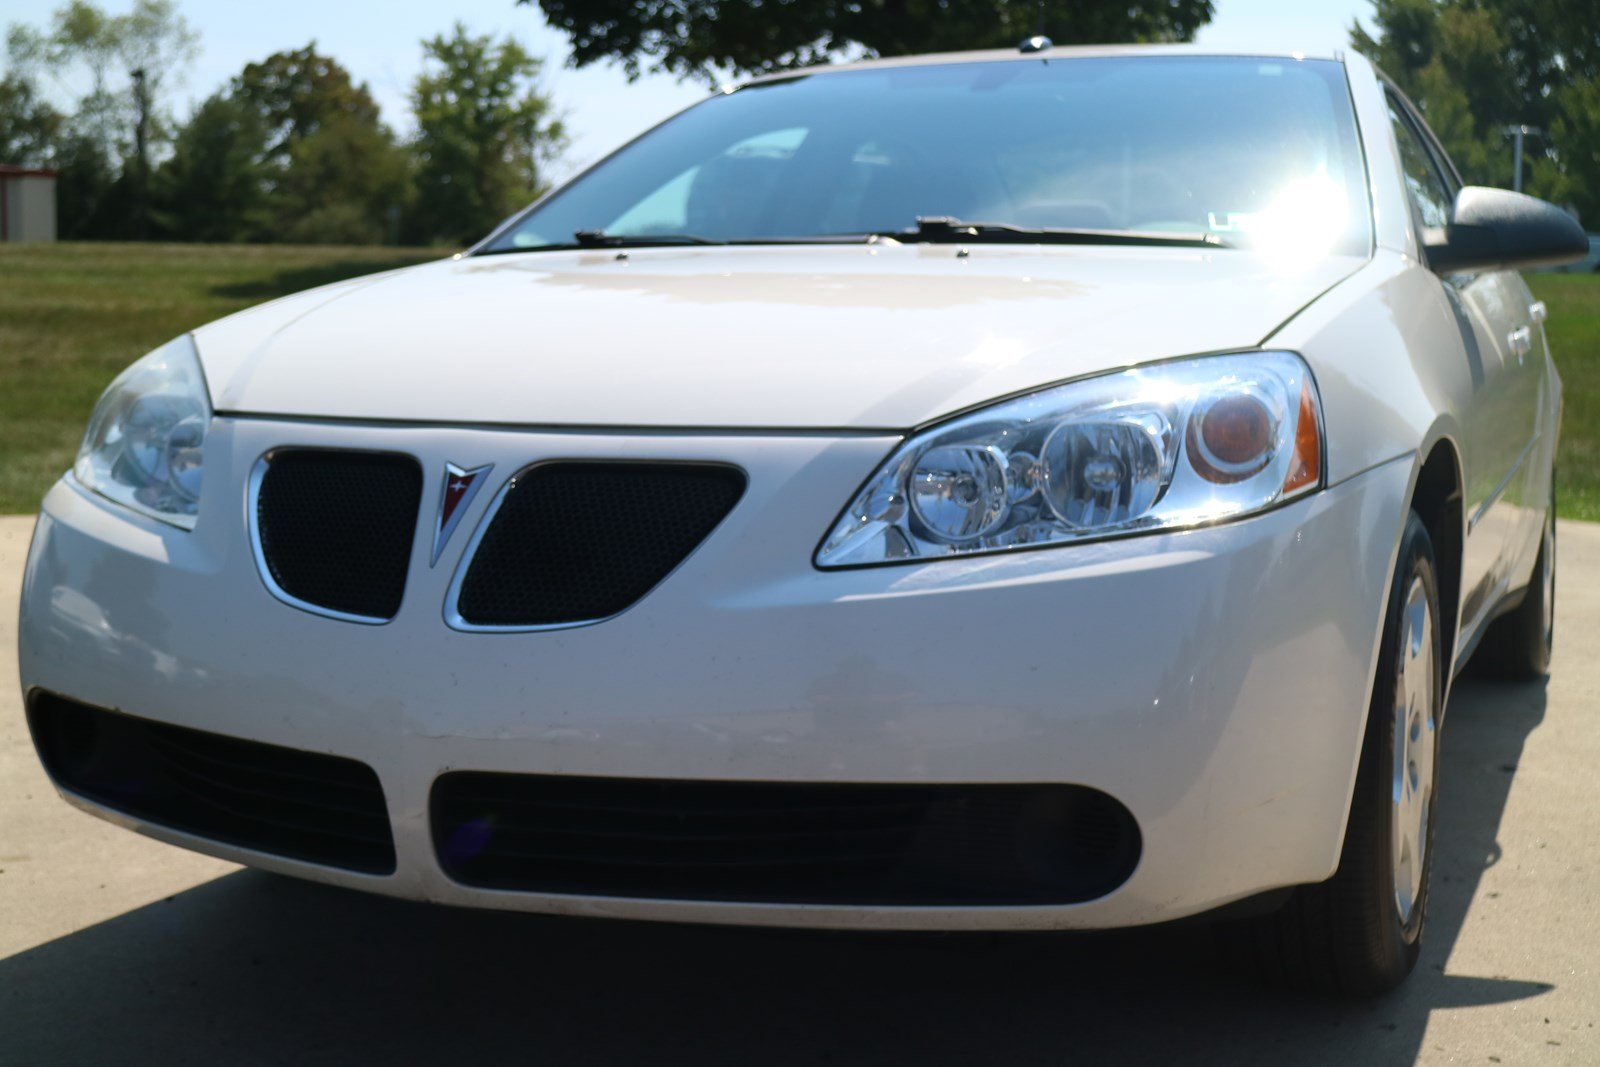 Pre-Owned 2008 Pontiac G6 1SV Value Leader